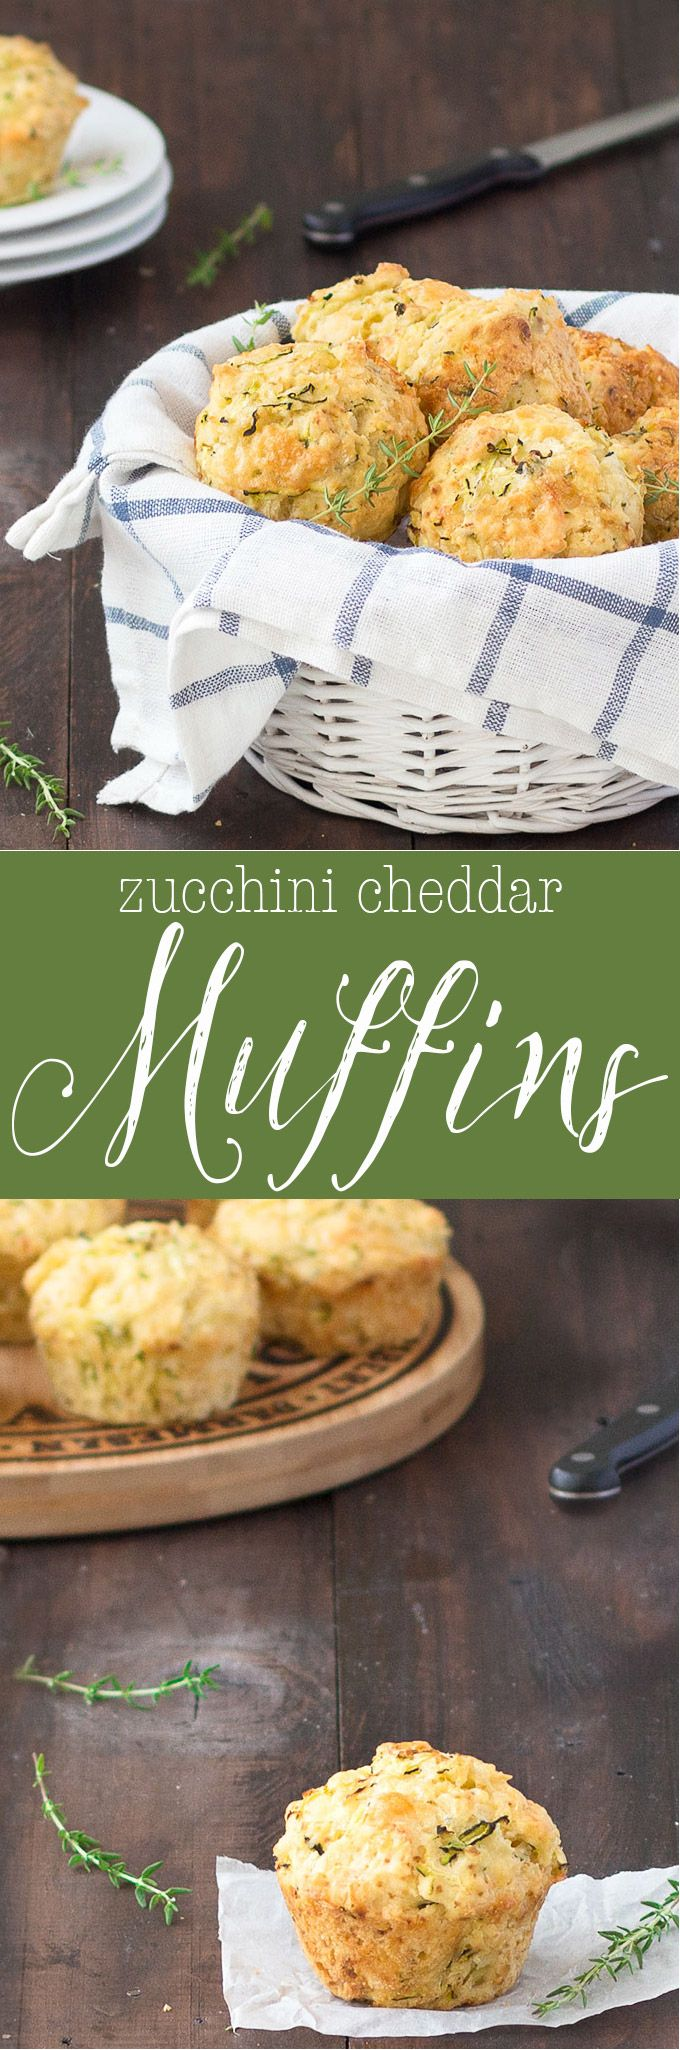 These zucchini cheddar cheese savory muffins are super delicious, moist and full…